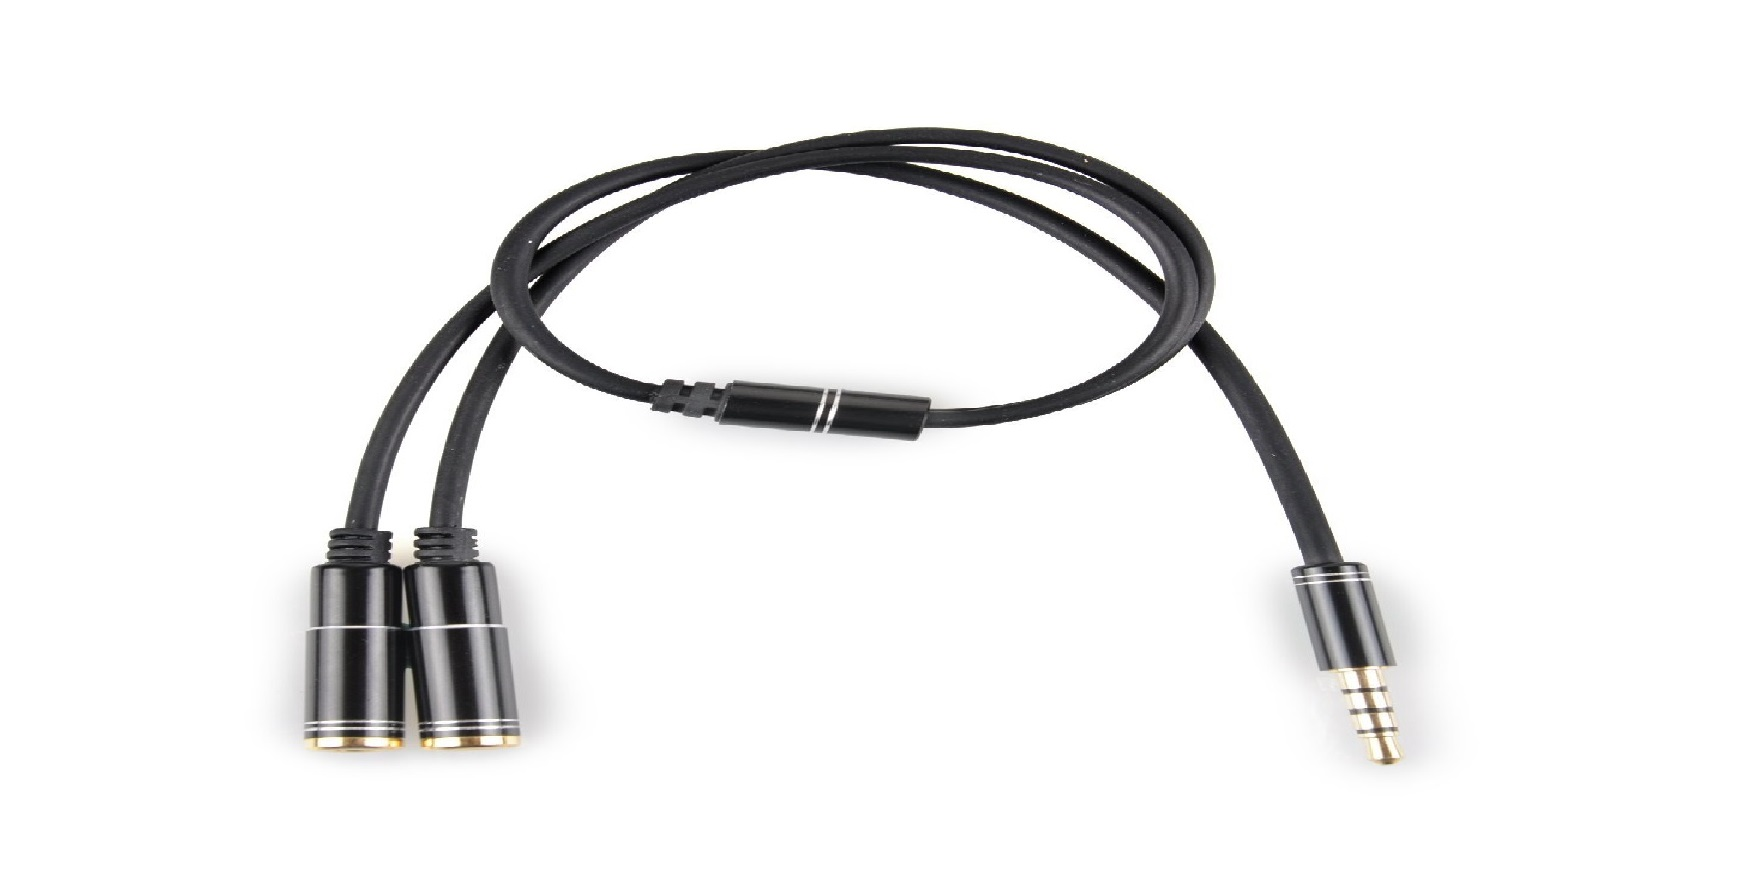 Headphone Audio Splitter Cable